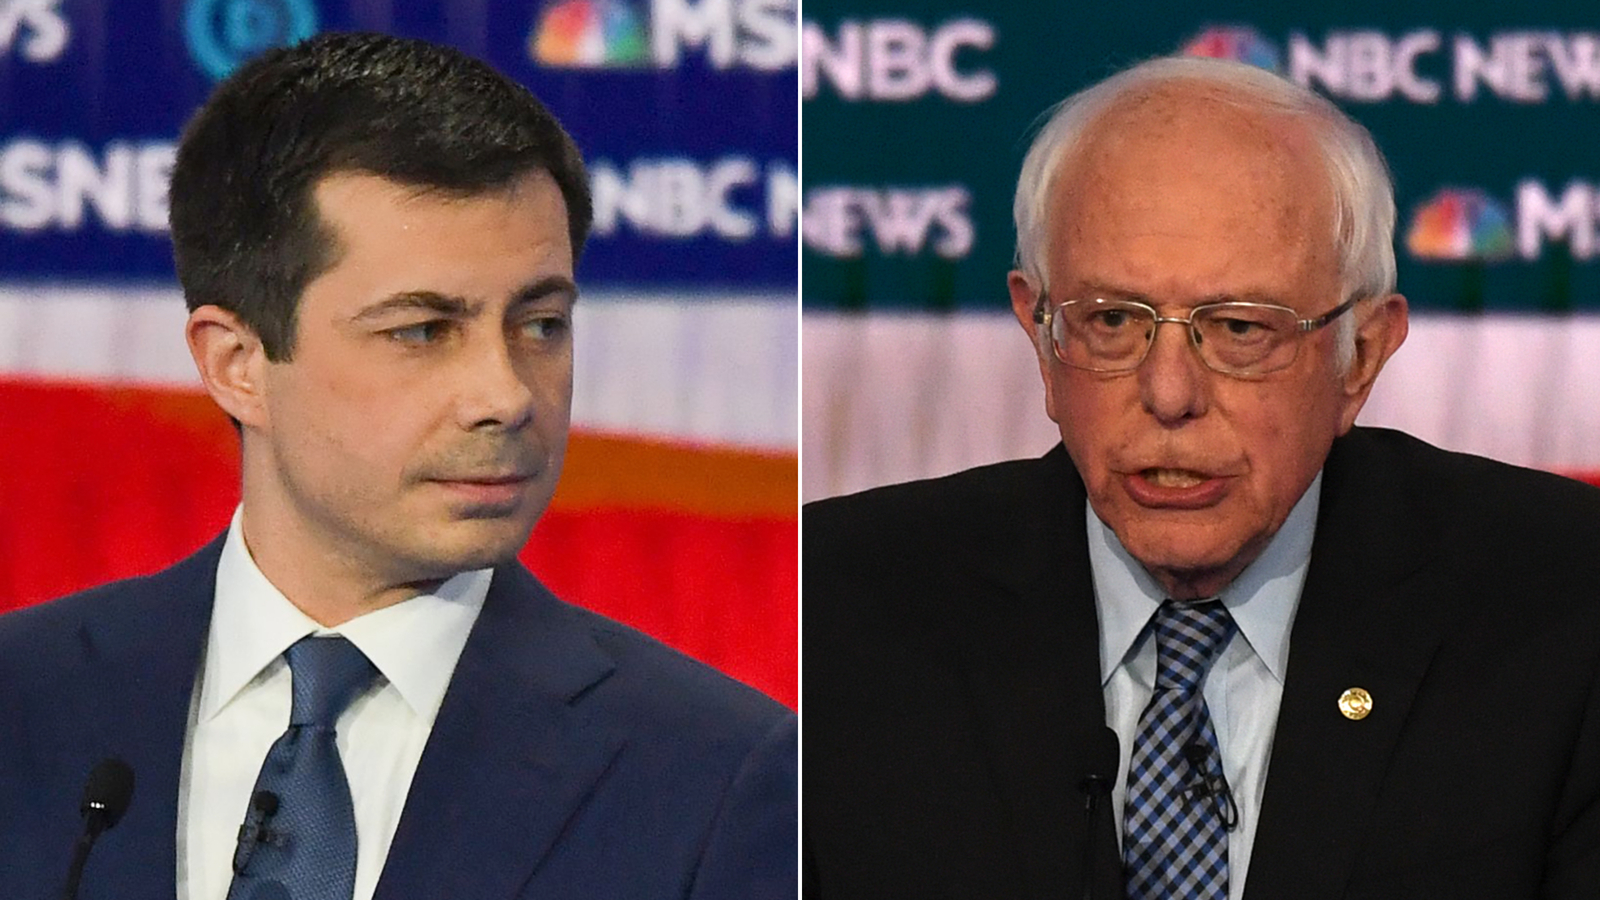 Buttigieg hits Sanders by name over health care in new South Carolina TV ad